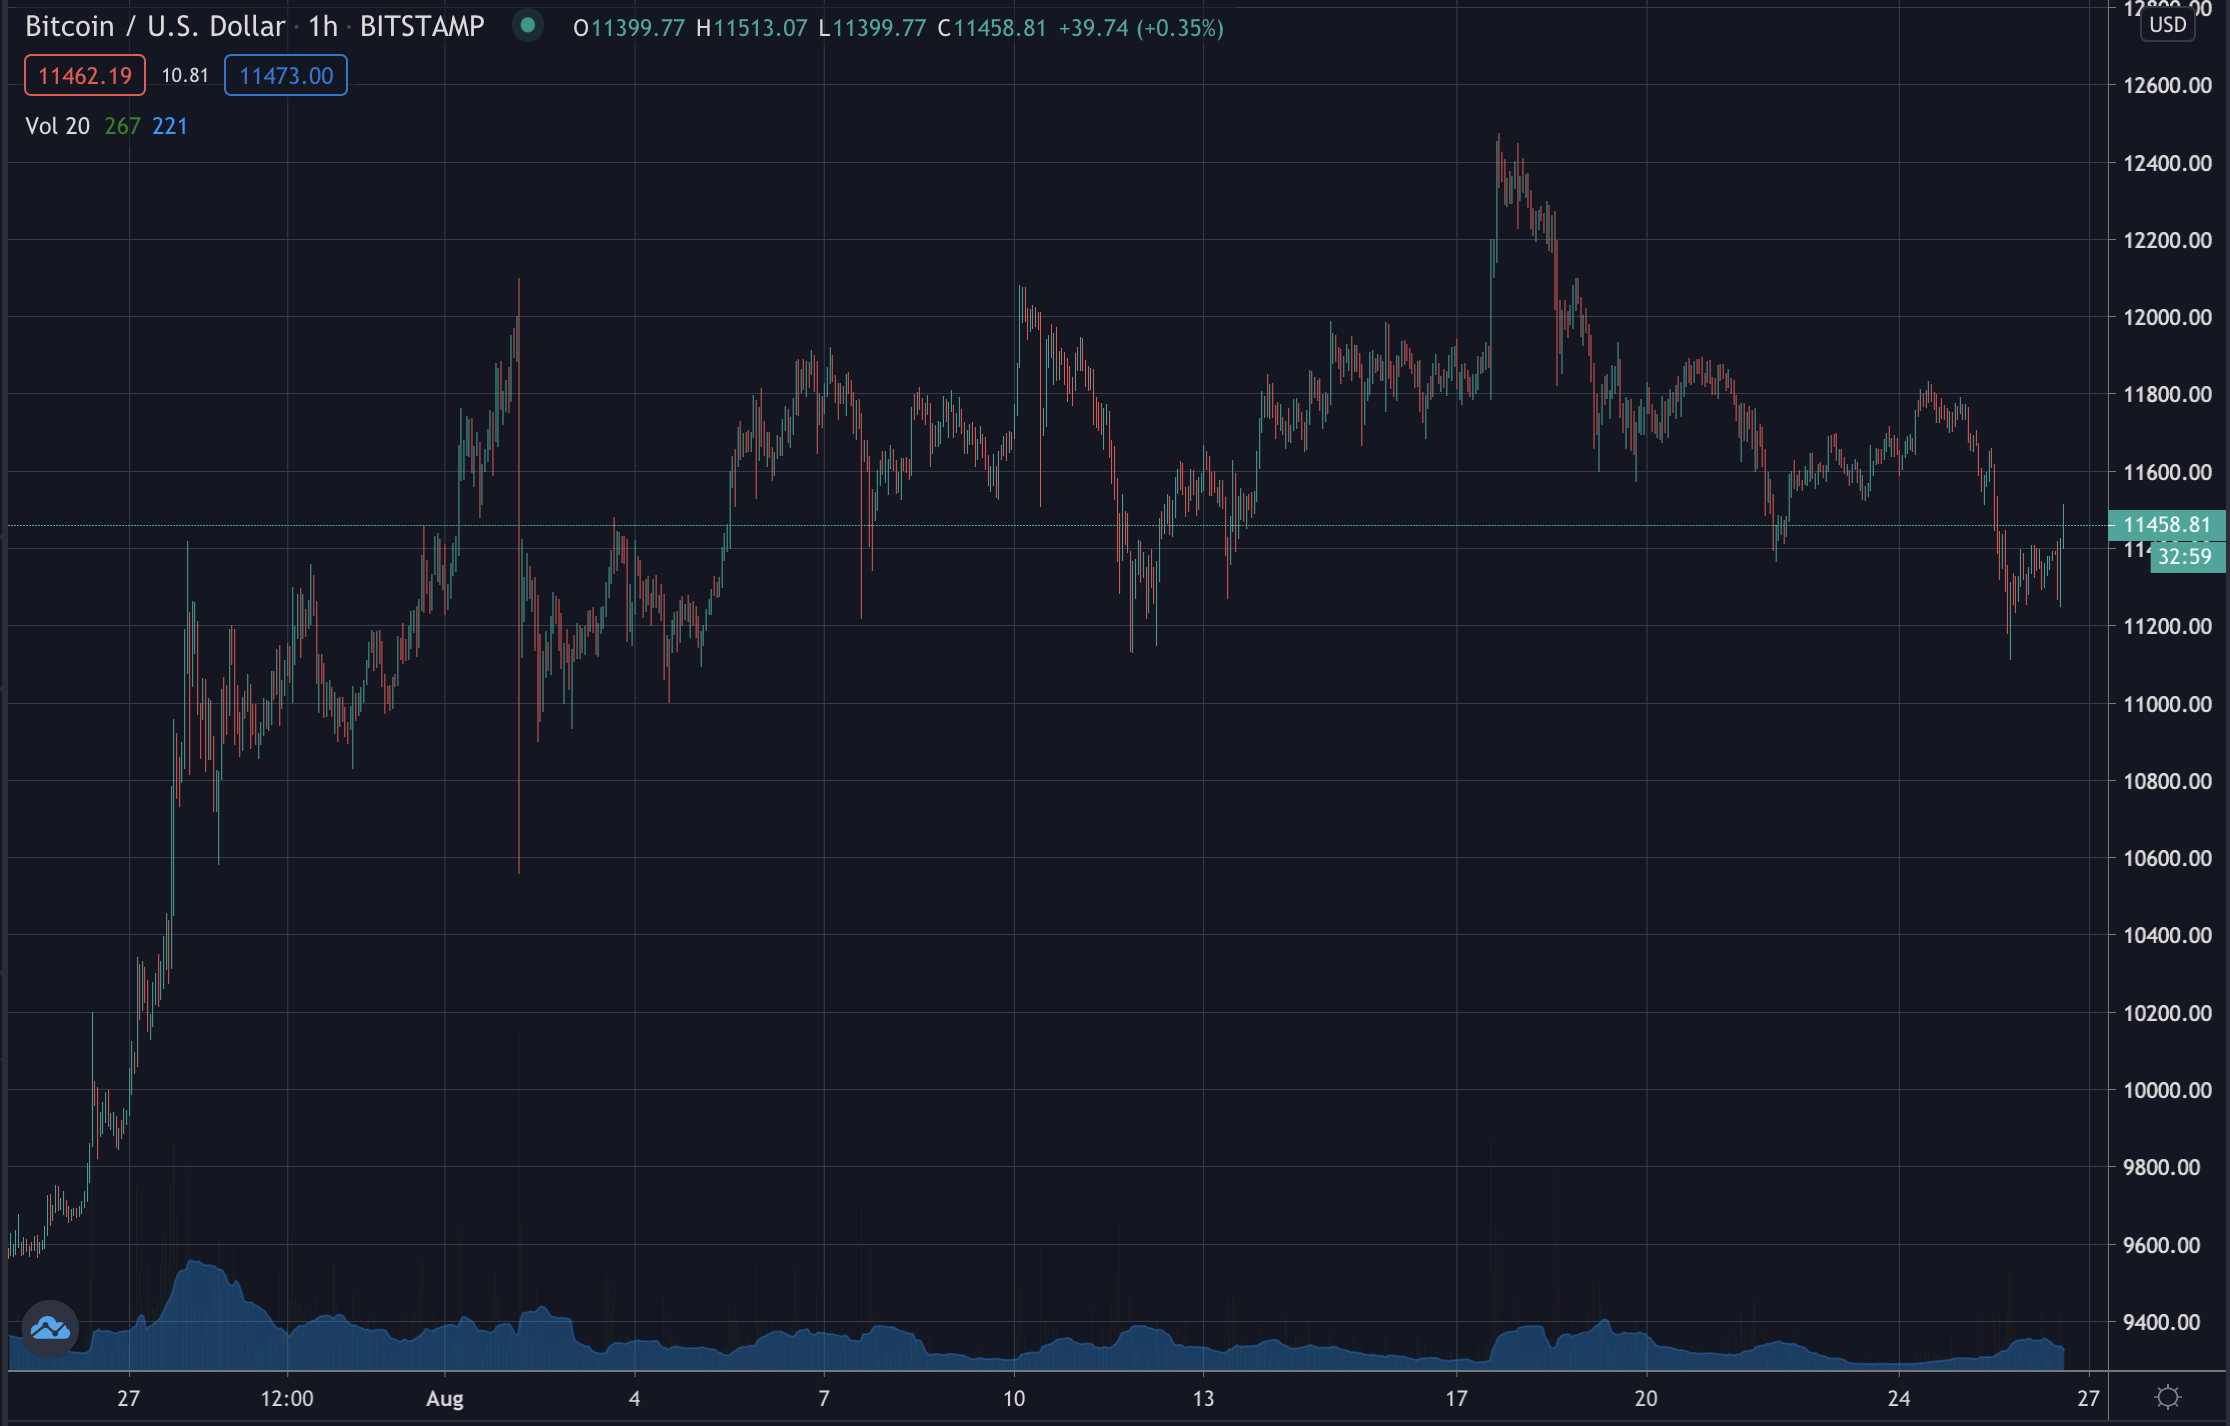 Bitcoin price, August 2020